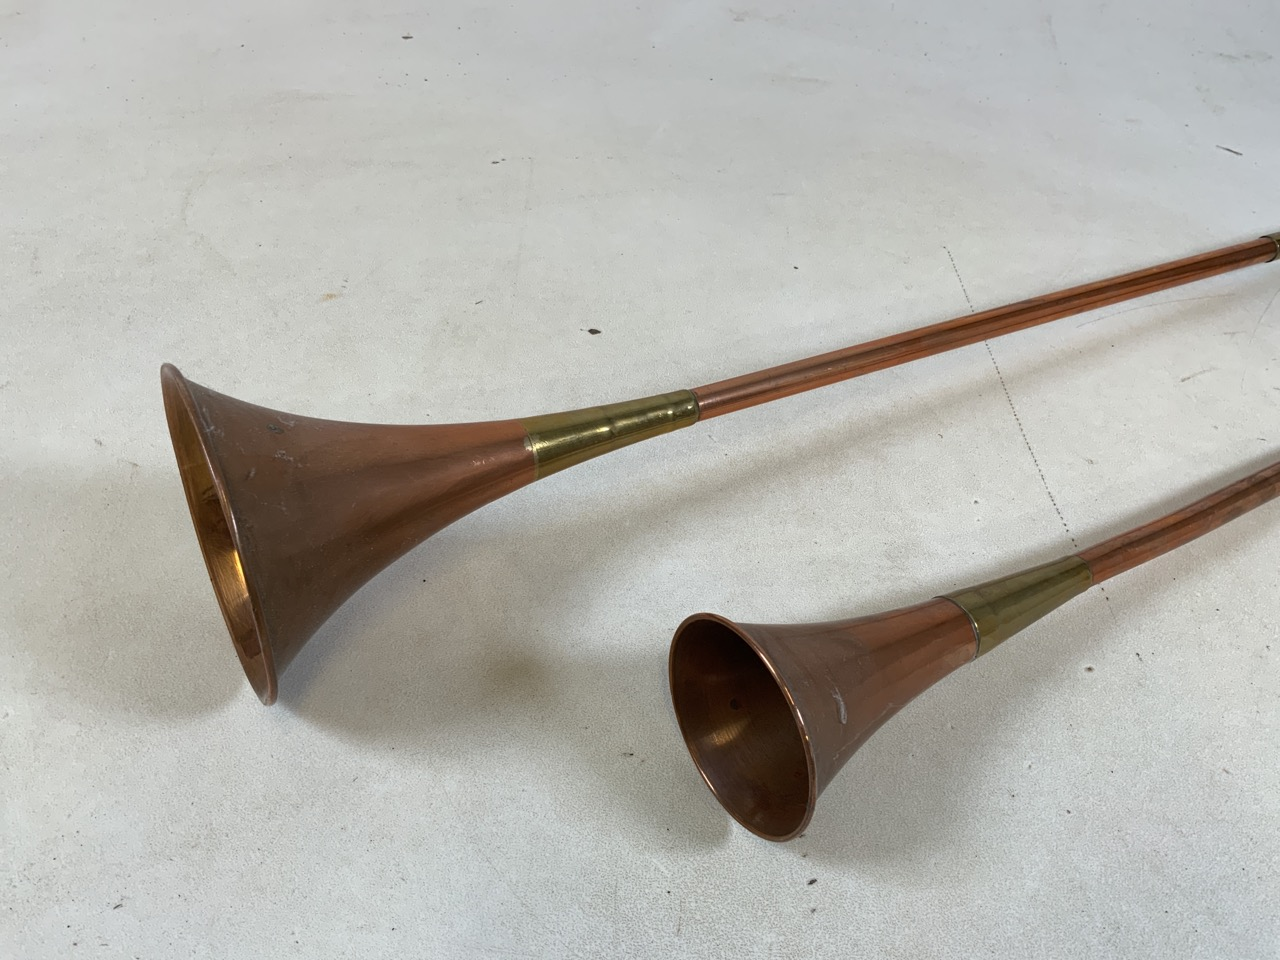 Two copper and brass hunting horns the longest 119cm and the shortest 74cm - Image 2 of 6